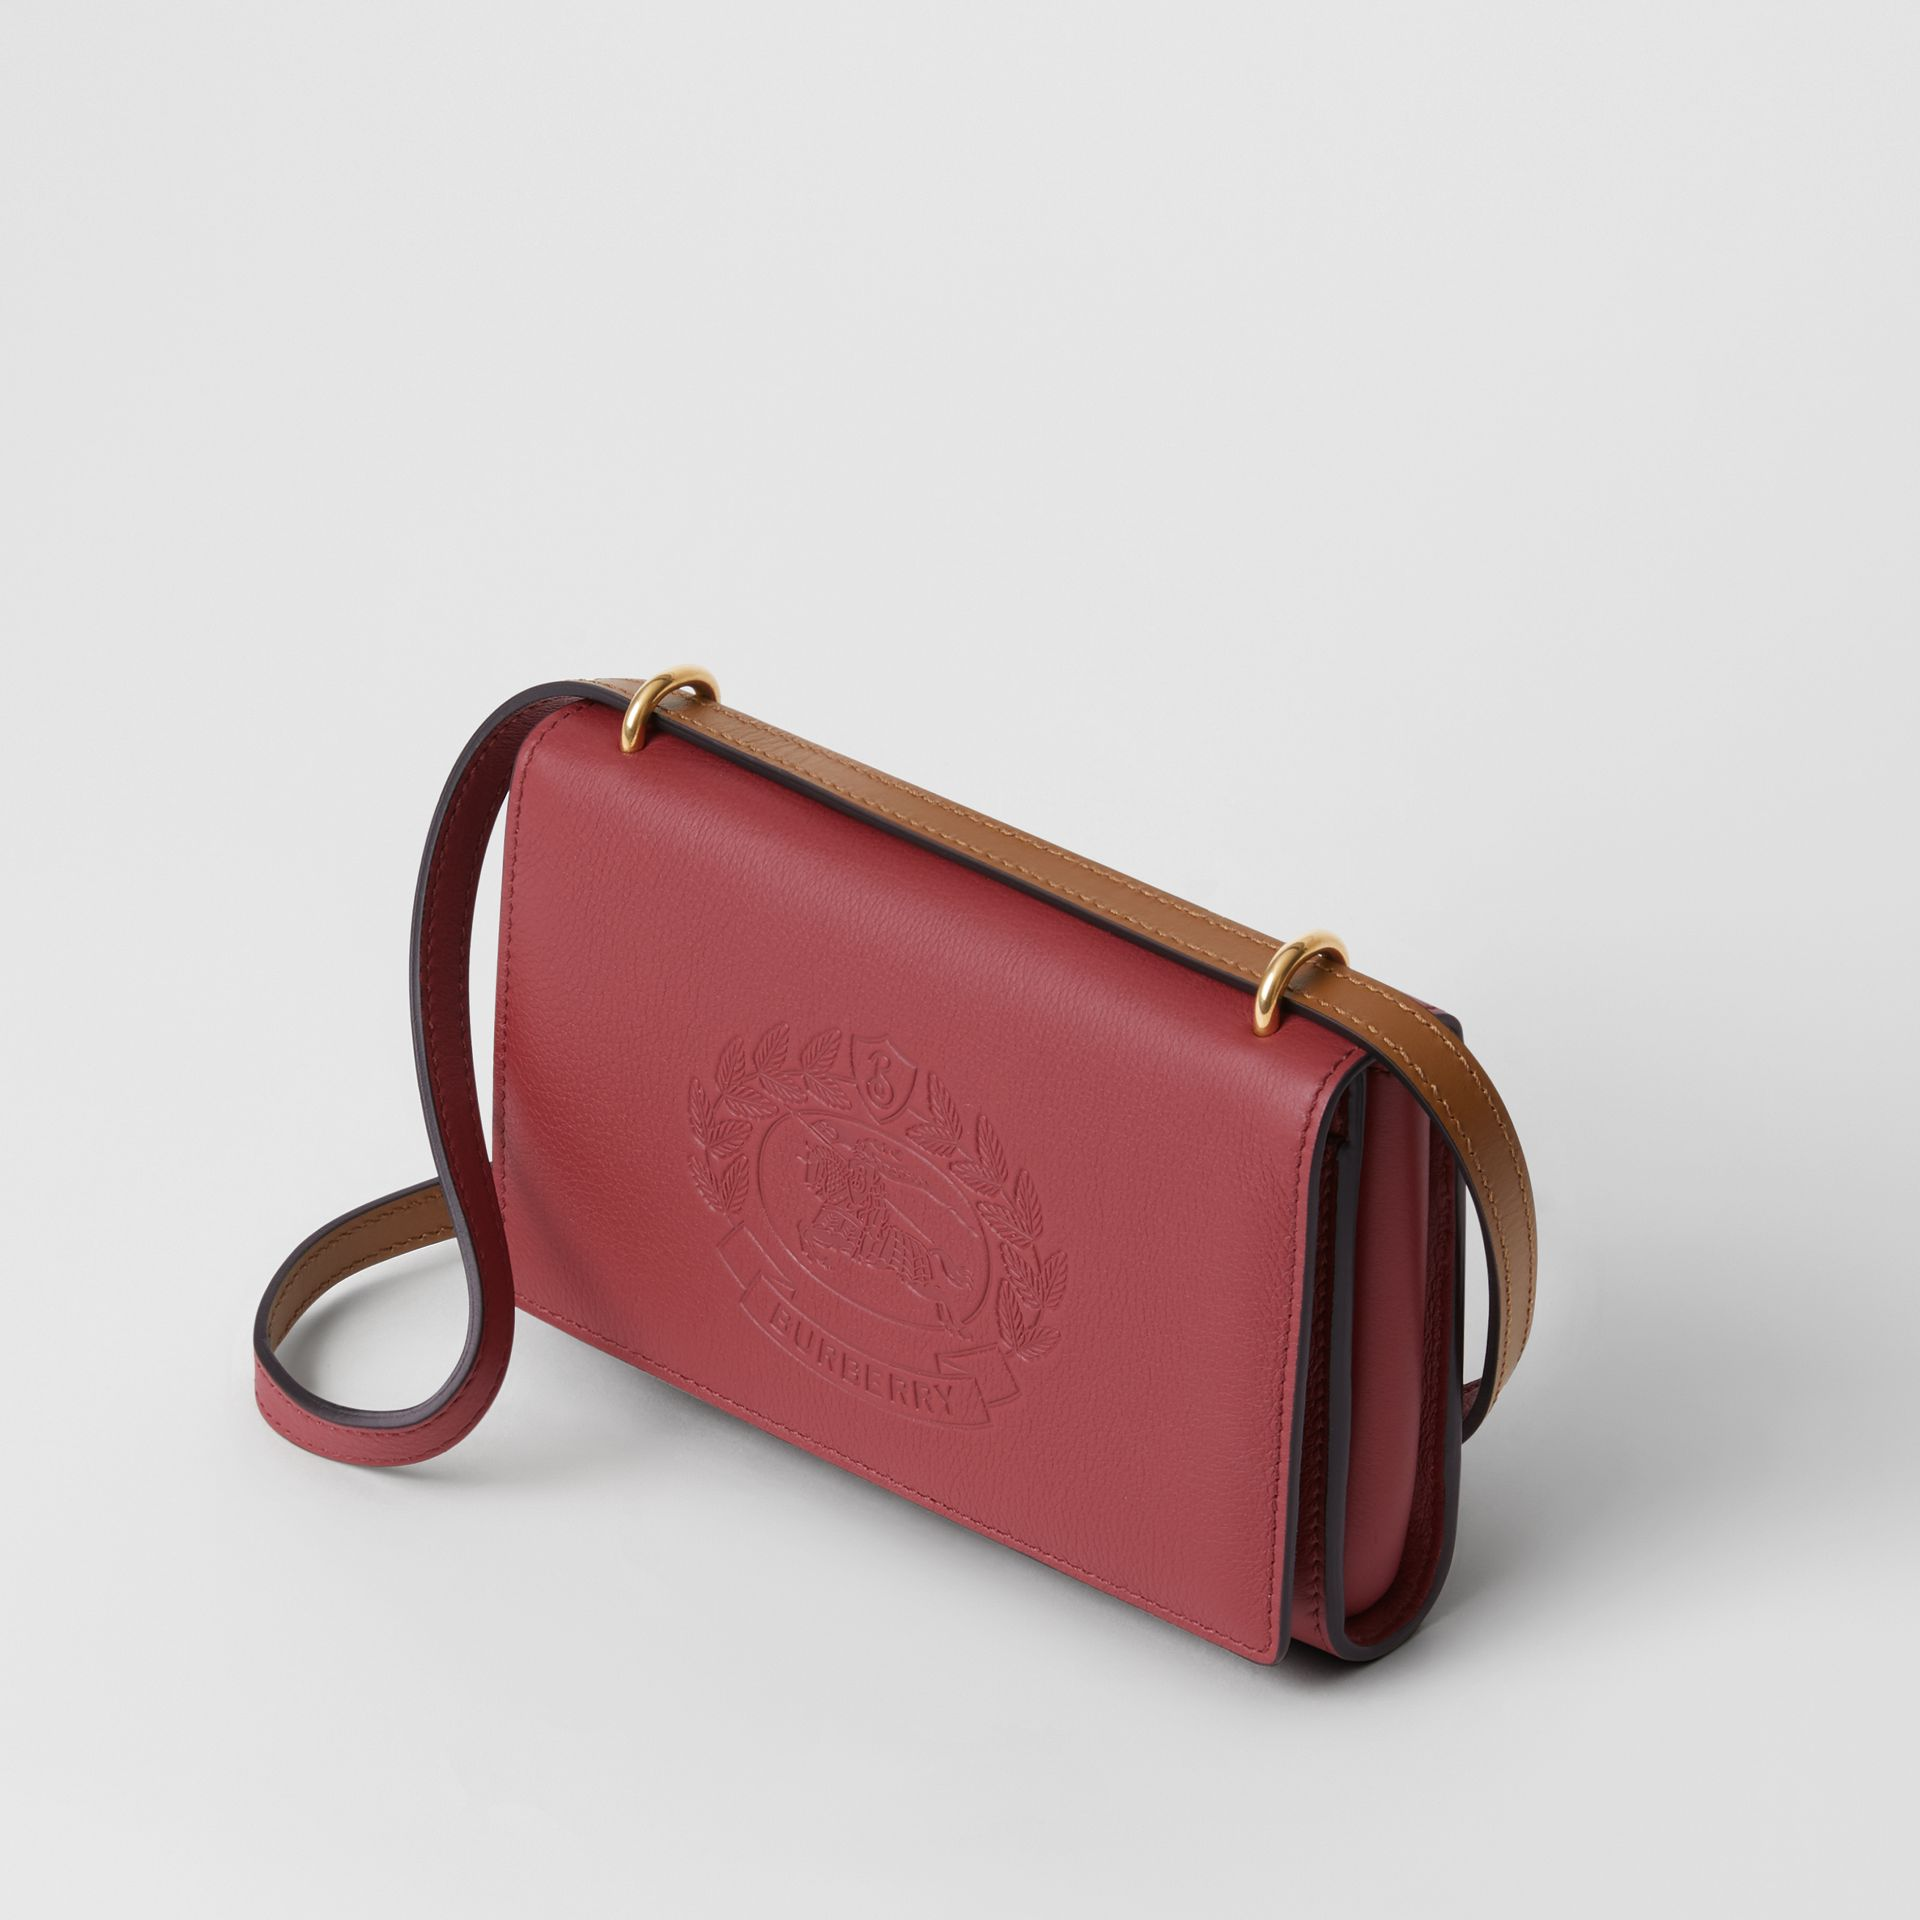 Embossed Crest Leather Wallet with Detachable Strap in Crimson - Women | Burberry - gallery image 4